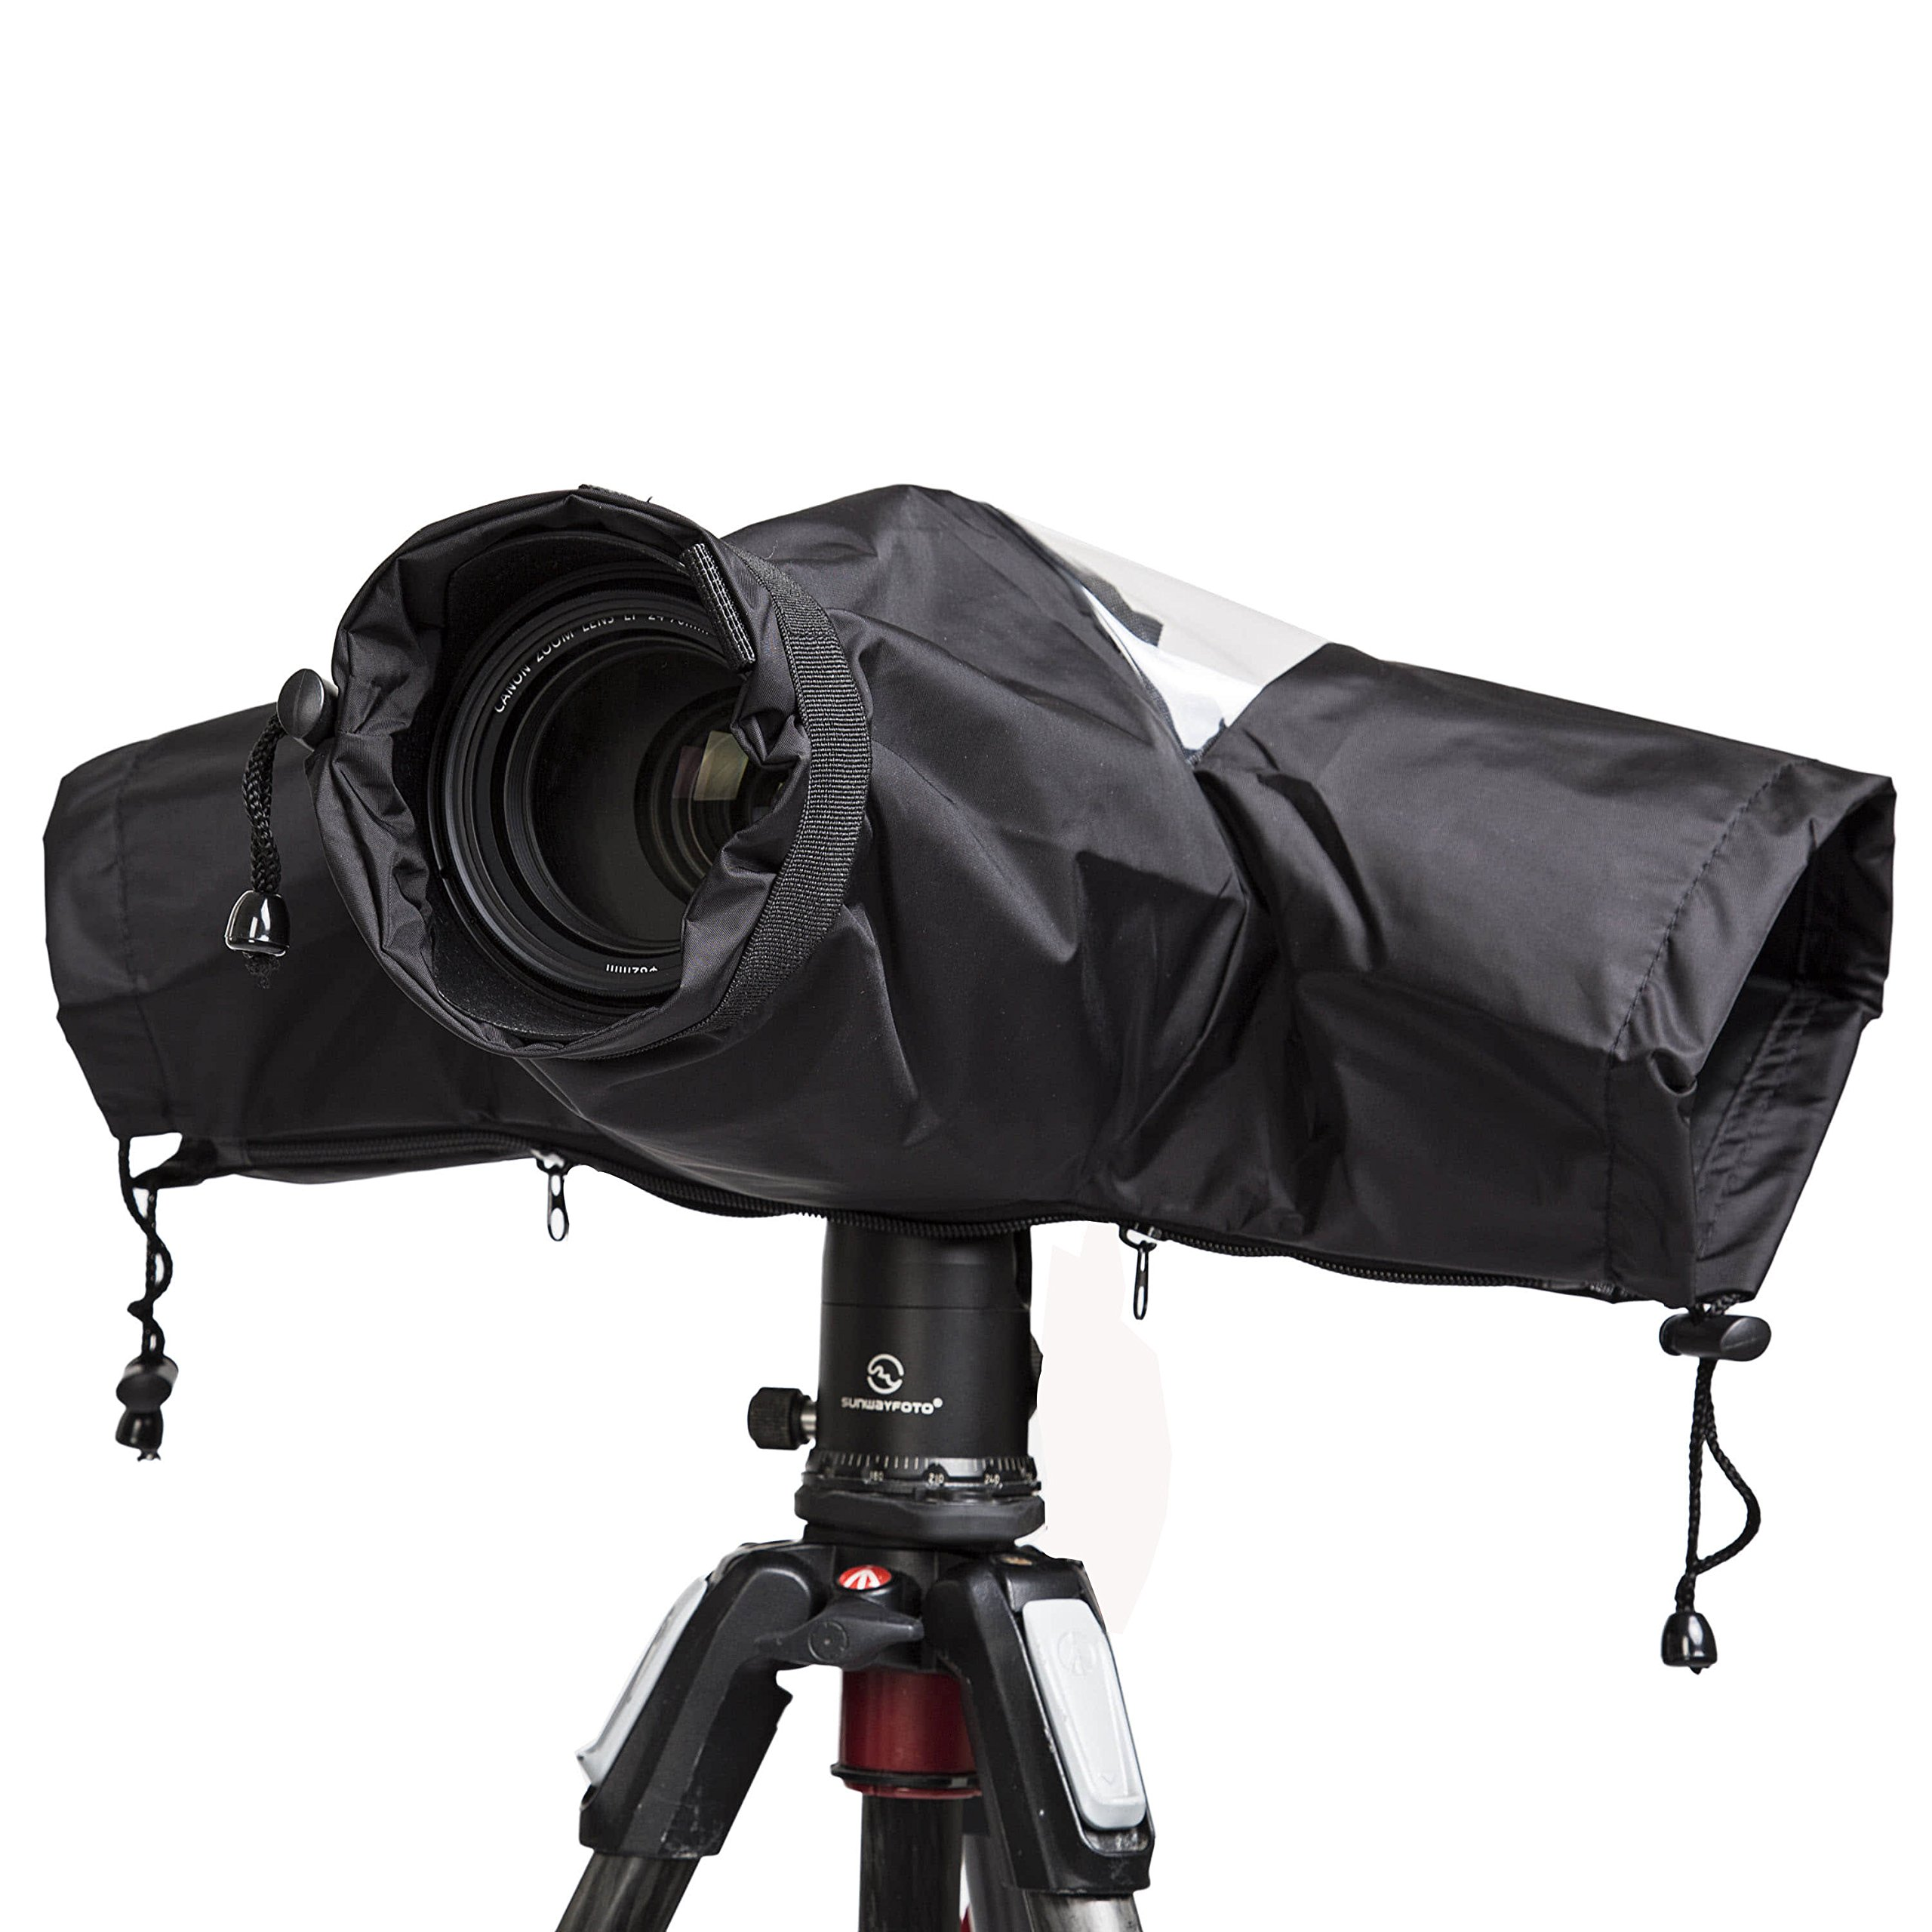 G-raphy Professional Waterproof DSLR Camera Rain Cover for Digital SLR Cameras